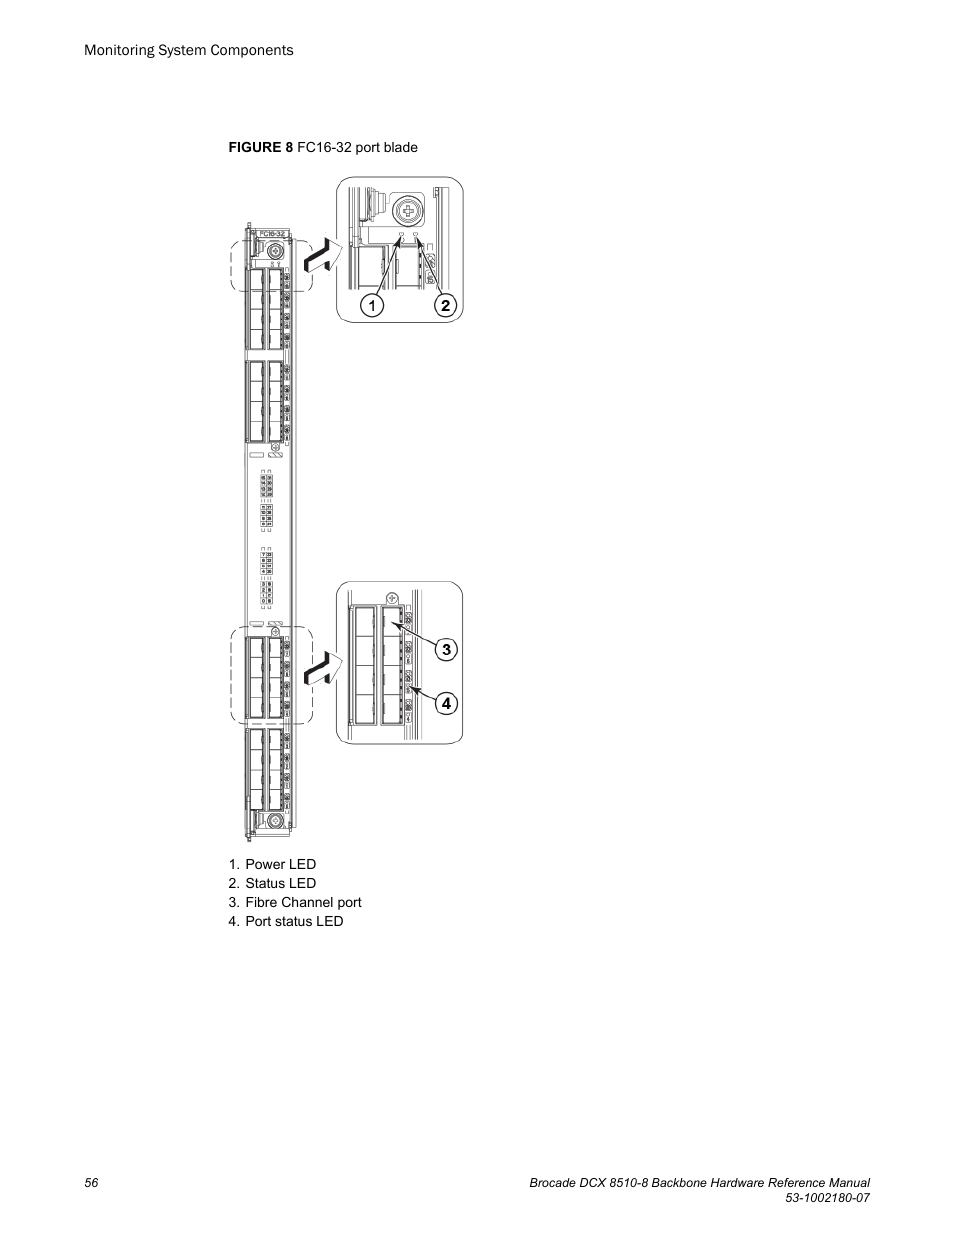 Brocade DCX 8510-8 Backbone Hardware Reference Manual User